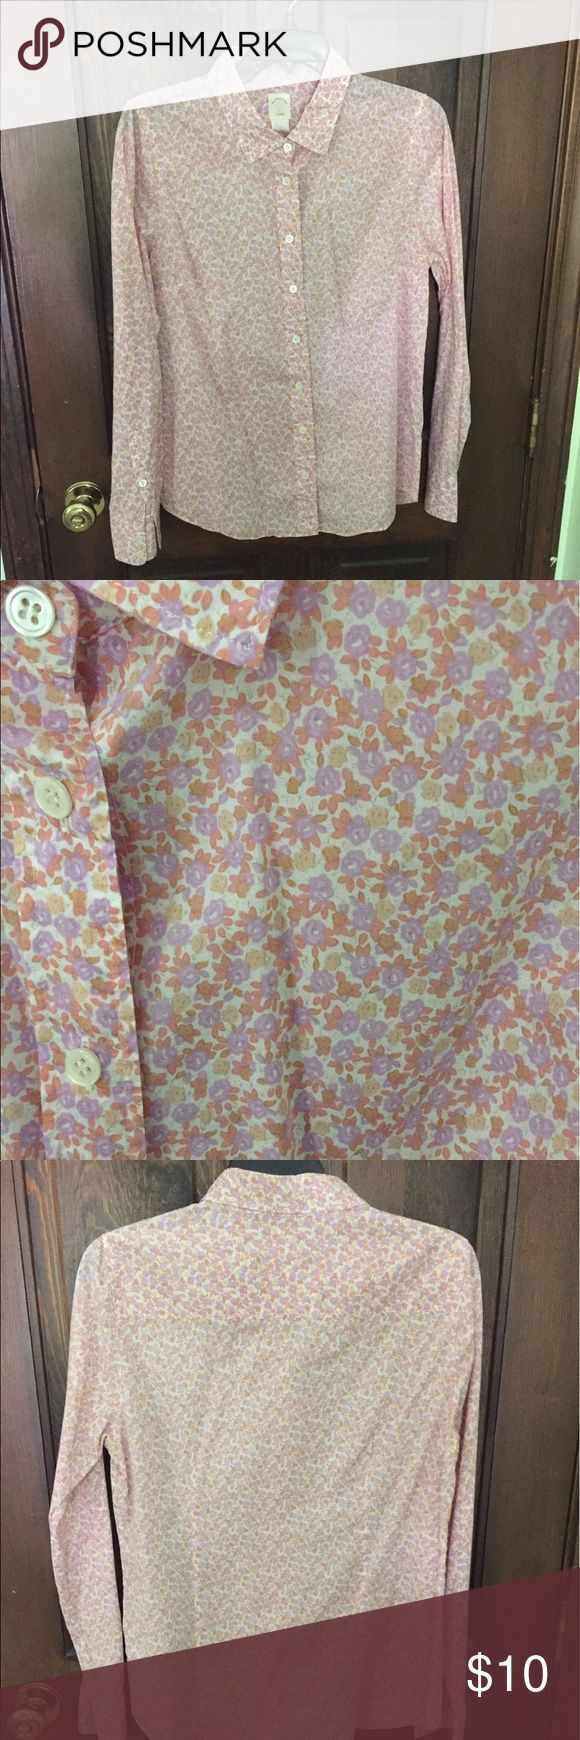 Jcrew button down ladies oxford This is a lightweight floral oxford from JCrew.  In excellent, rarely worn shape.  It is a size 10, but I wear a medium for reference too and it fits perfectly.  I'm just doing a closet clean out. J. Crew Tops Button Down Shirts